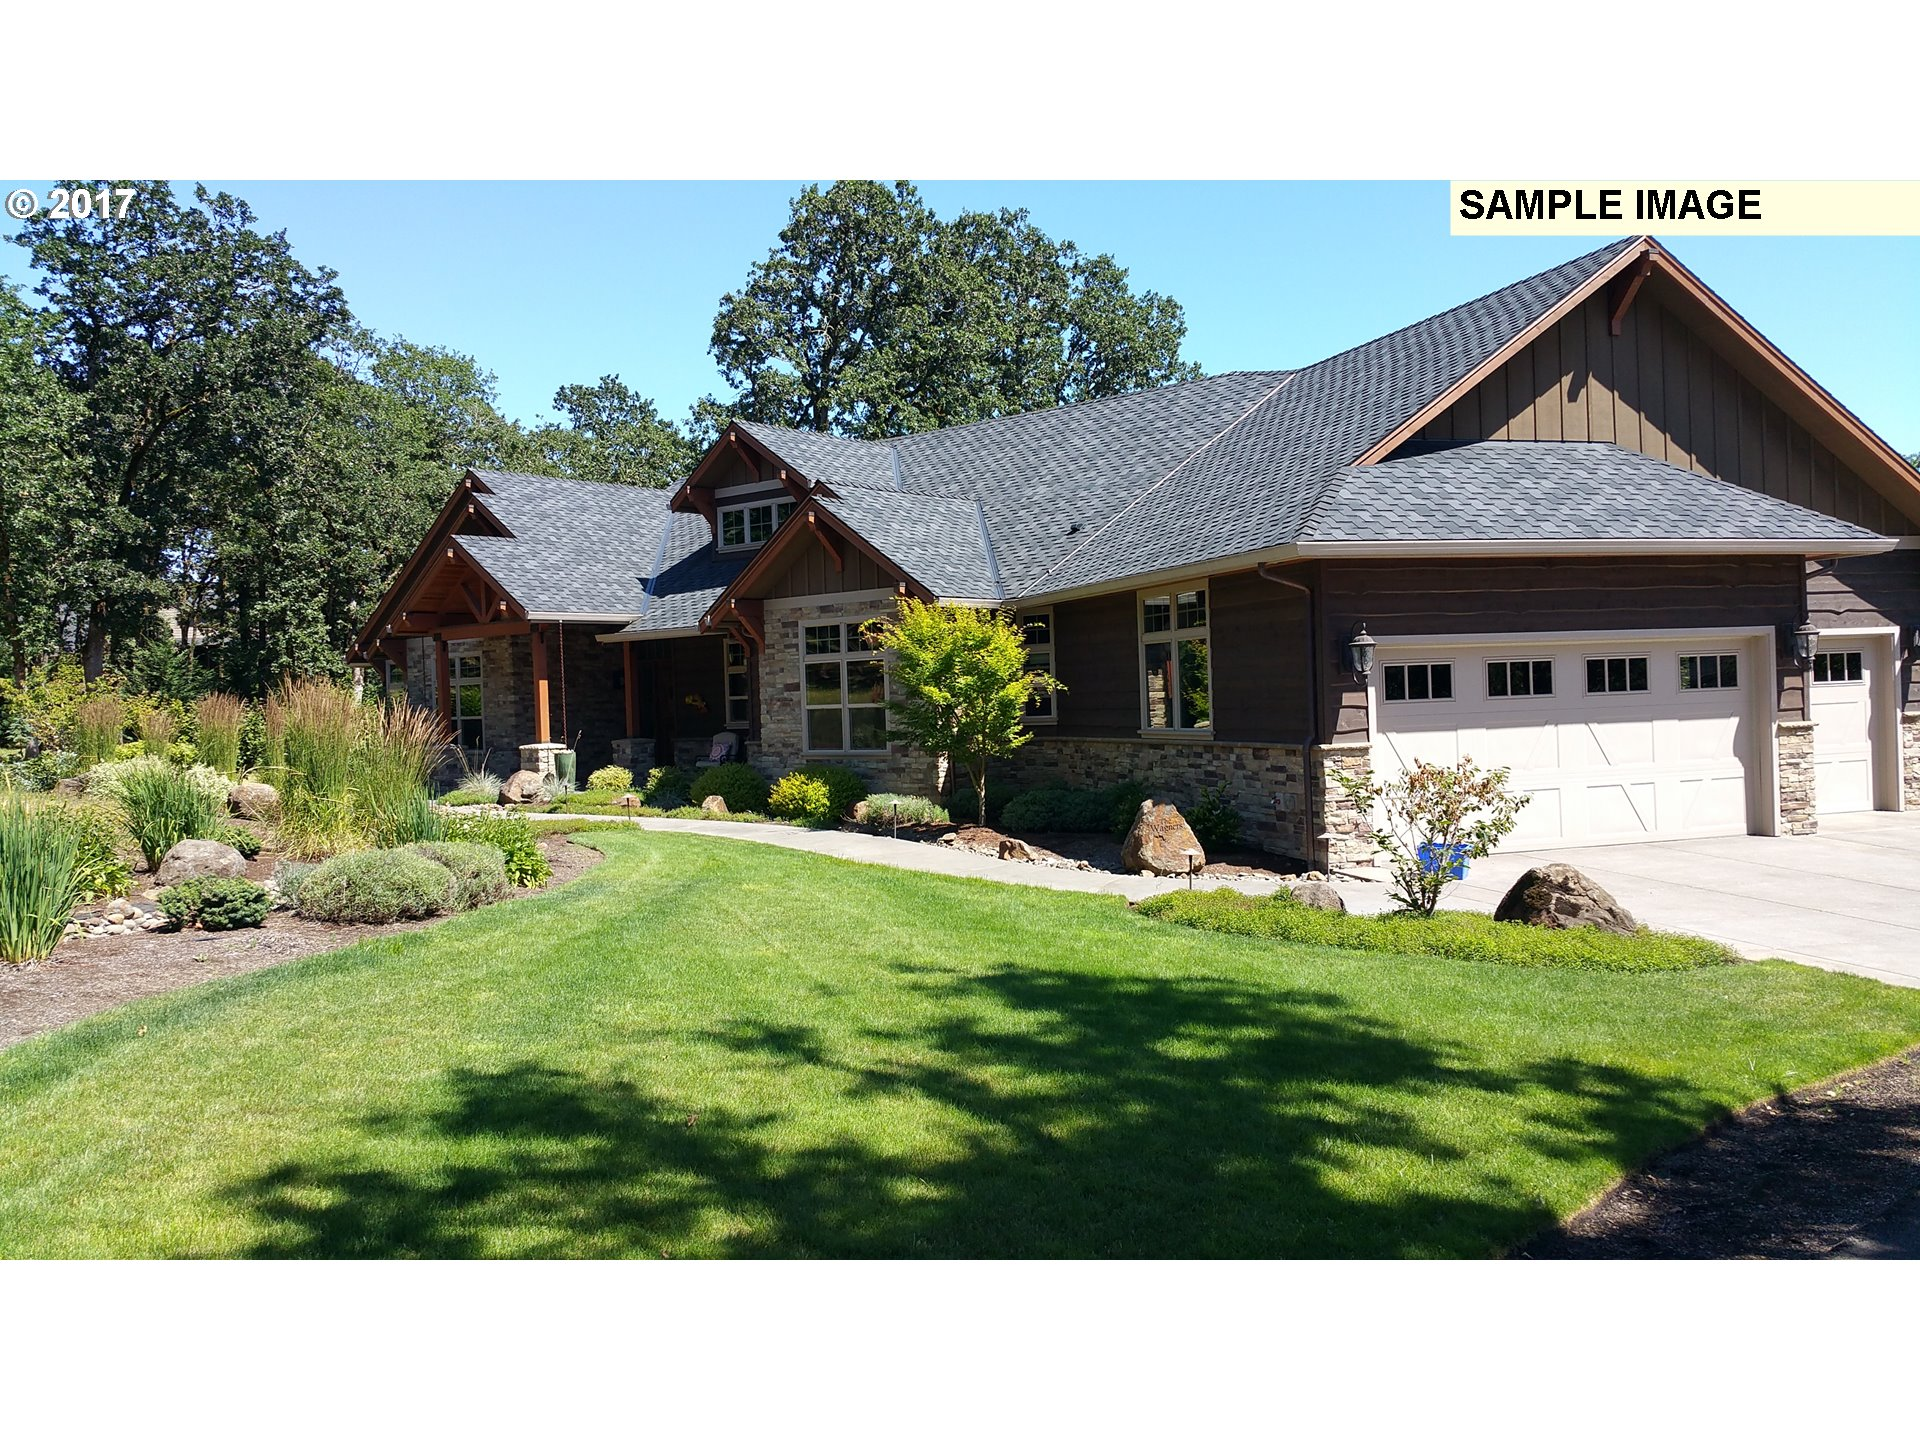 10525 S KRAXBERGER RD, Canby, OR 97013